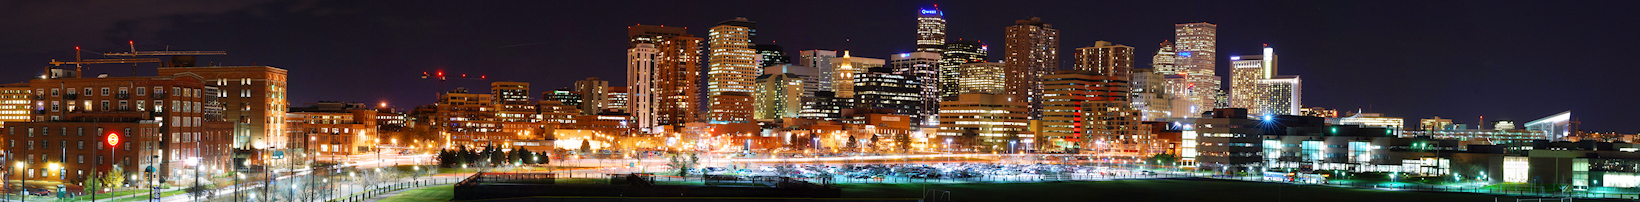 Denver_Colorado_Panorama.jpg